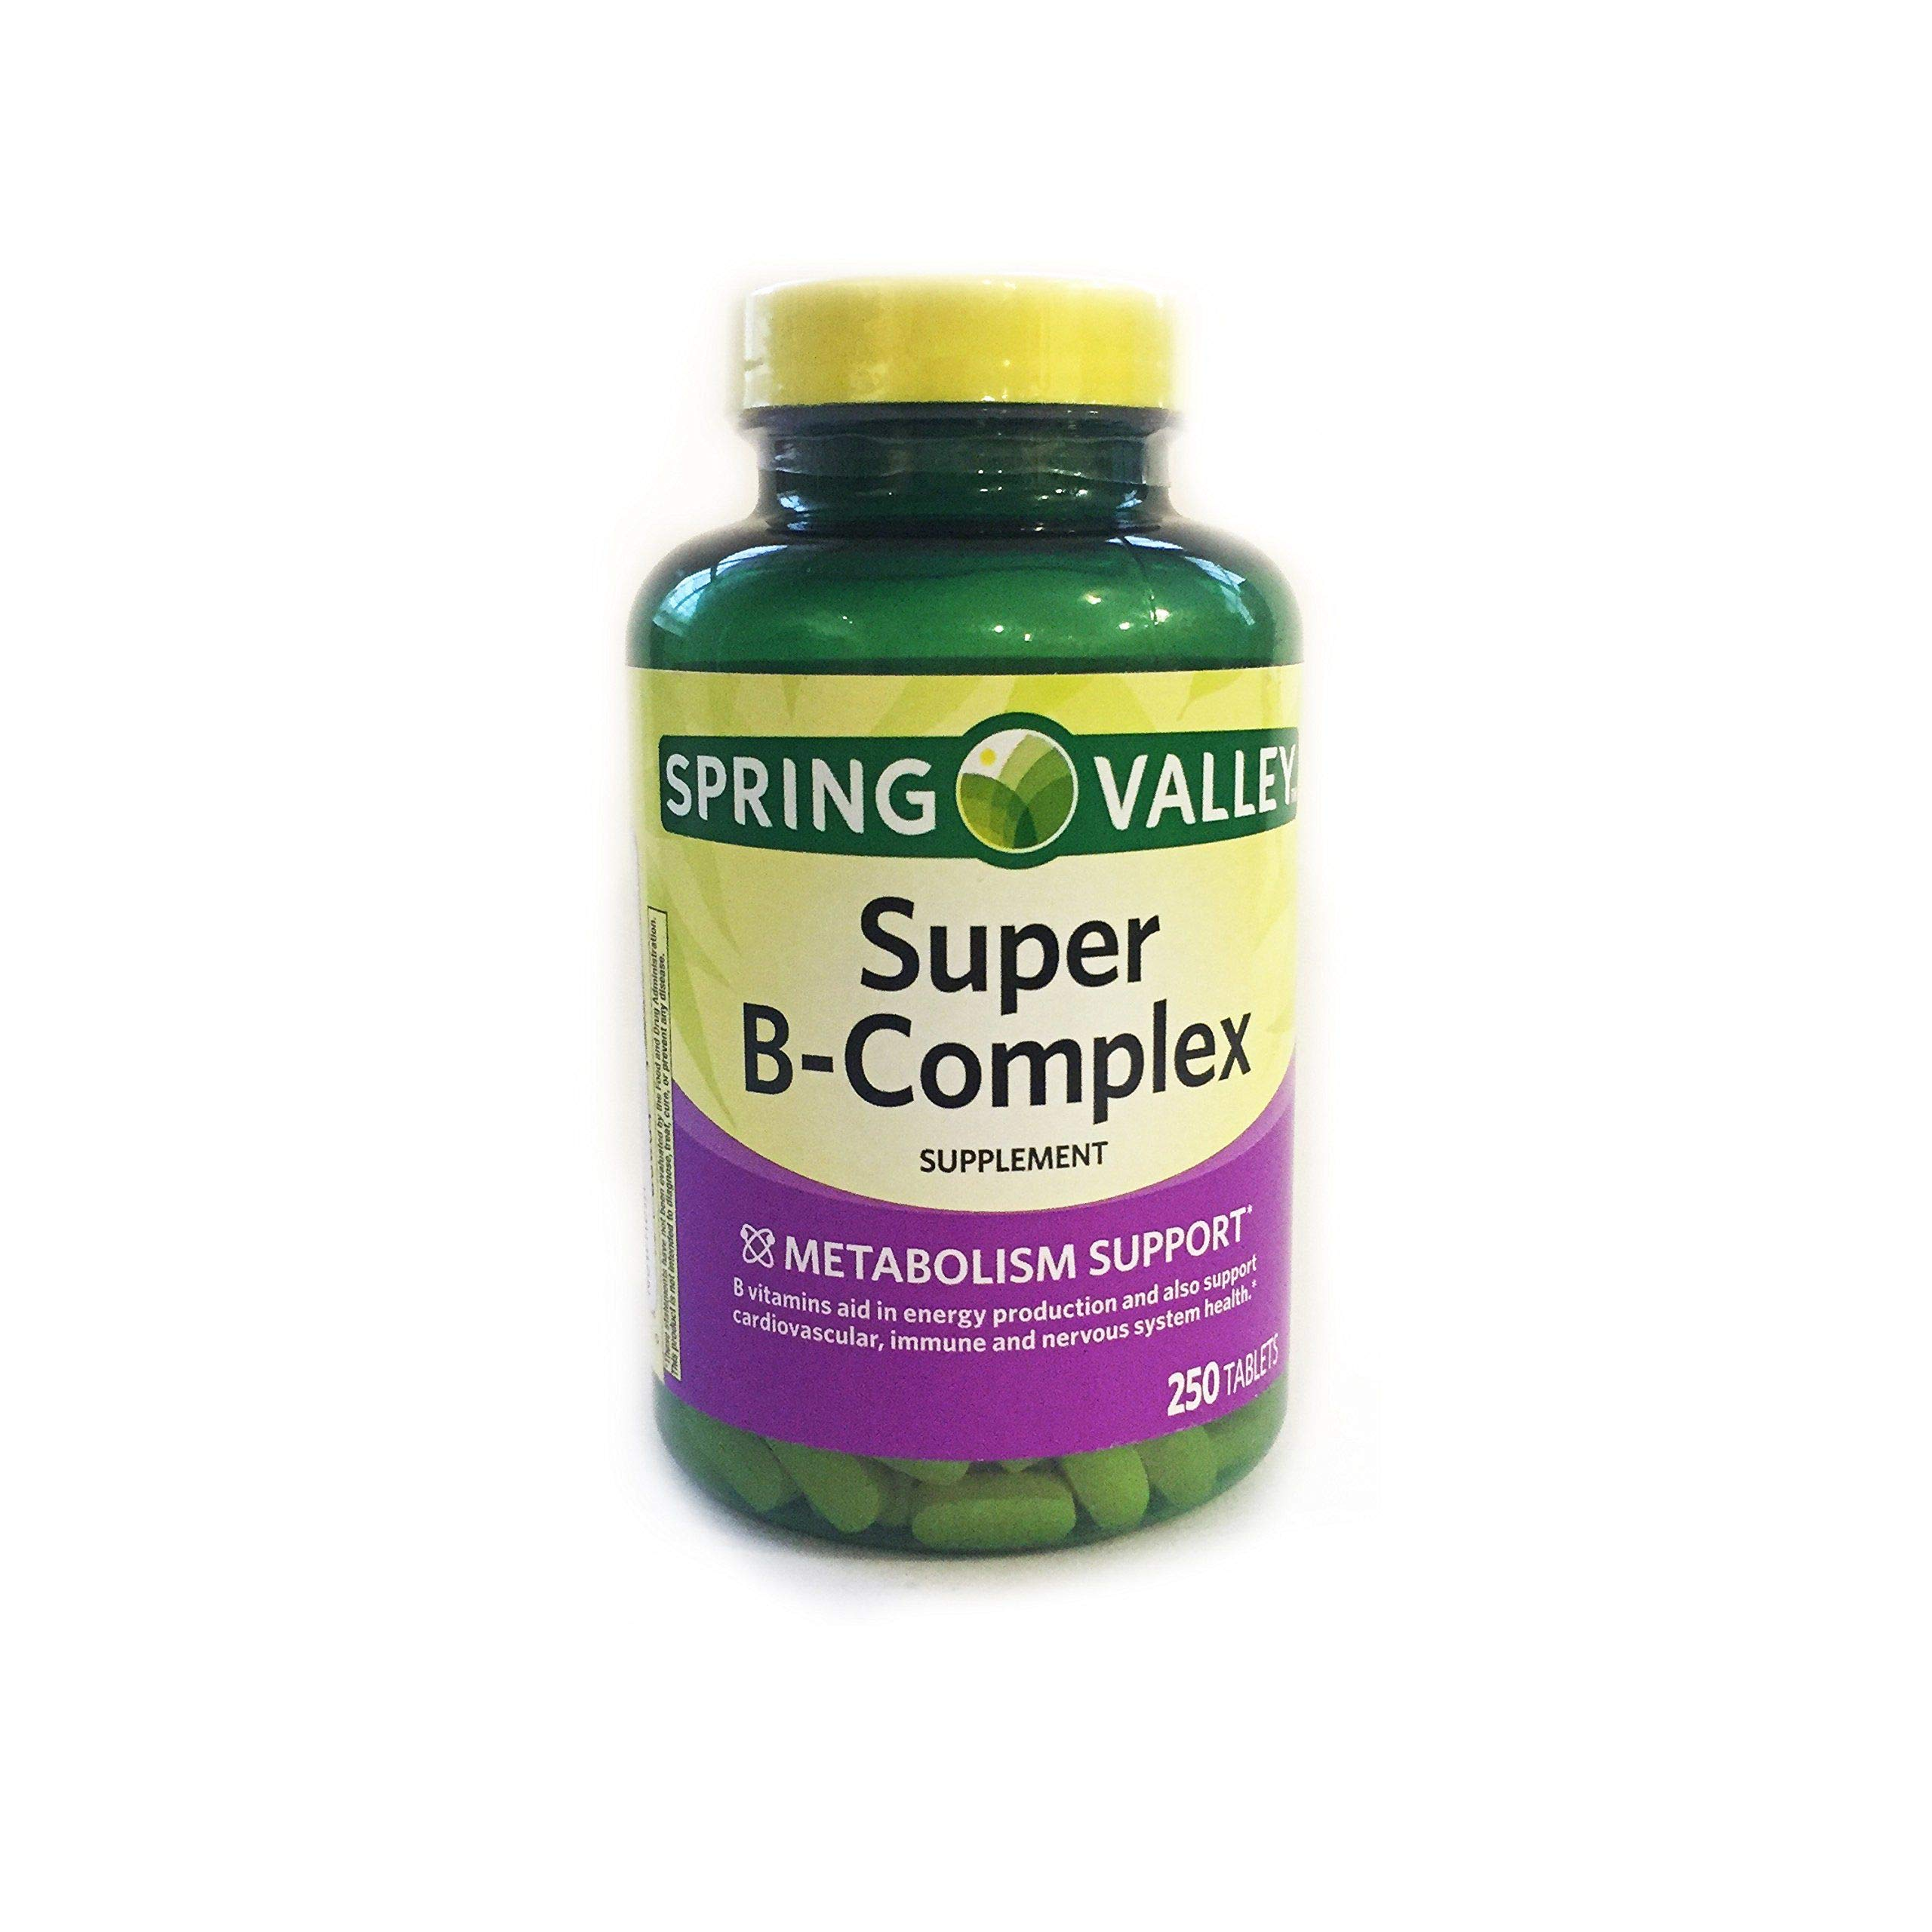 Spring Valley Super B-Complex, Metabolism Support, 250 Tablets